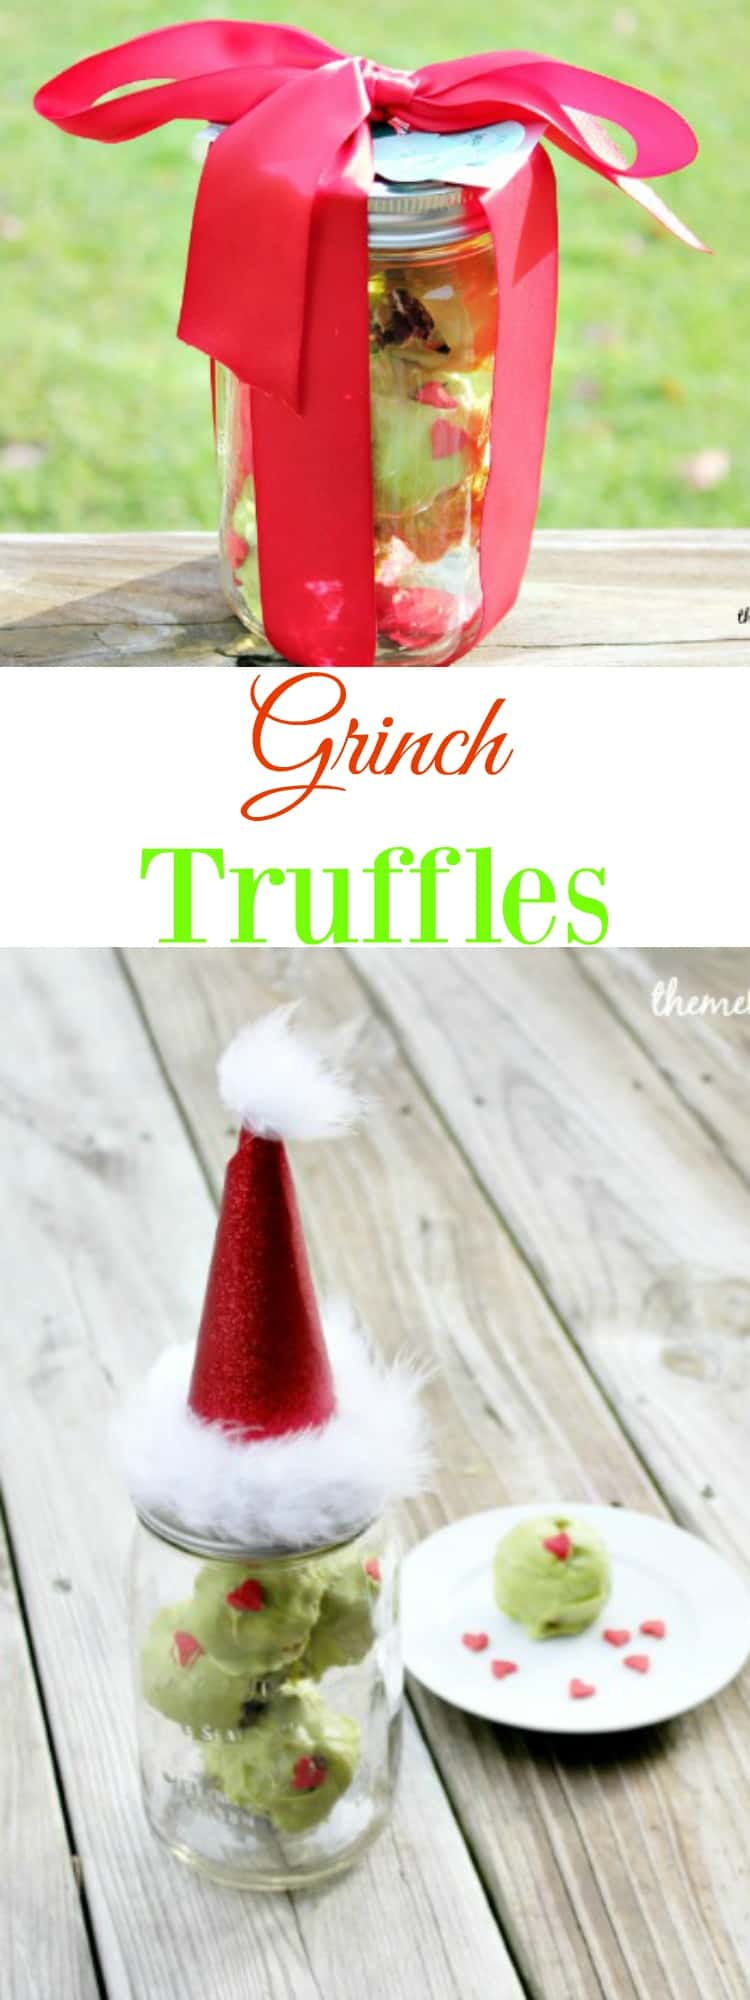 Grinch Truffles are the perfect holiday gift idea.